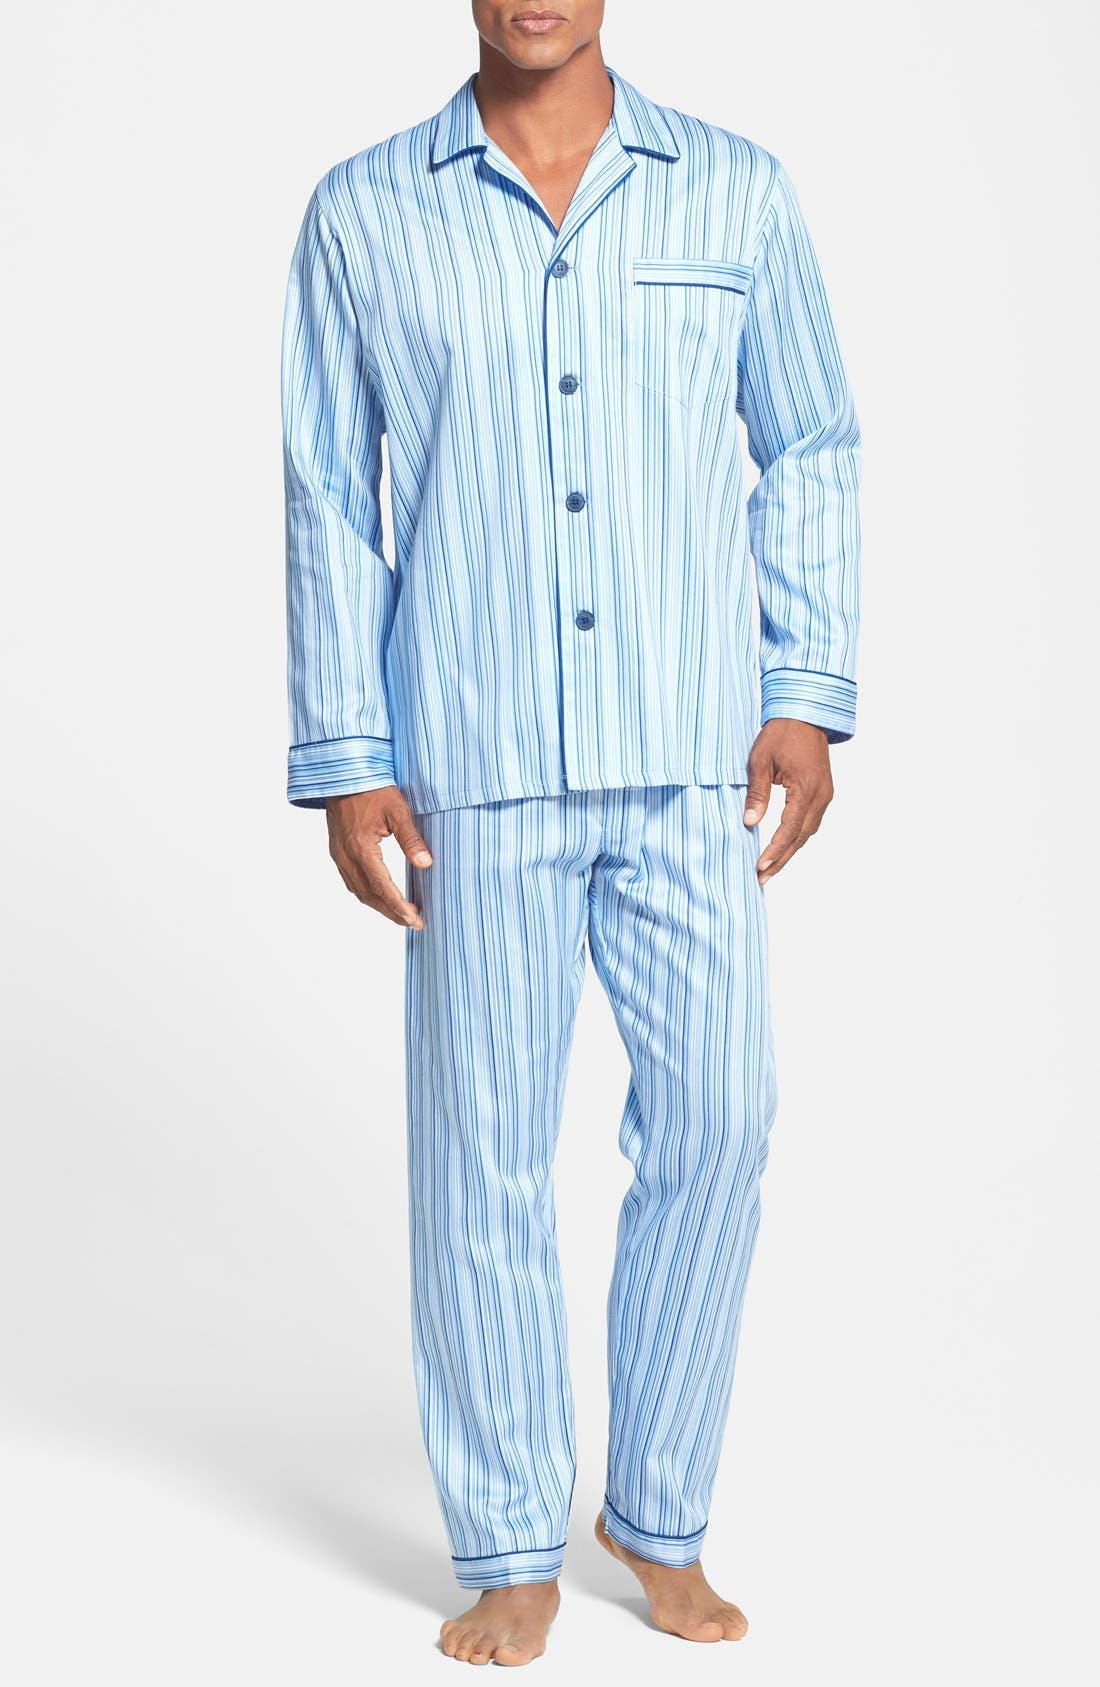 Main Image - Majestic International Cotton Pajamas